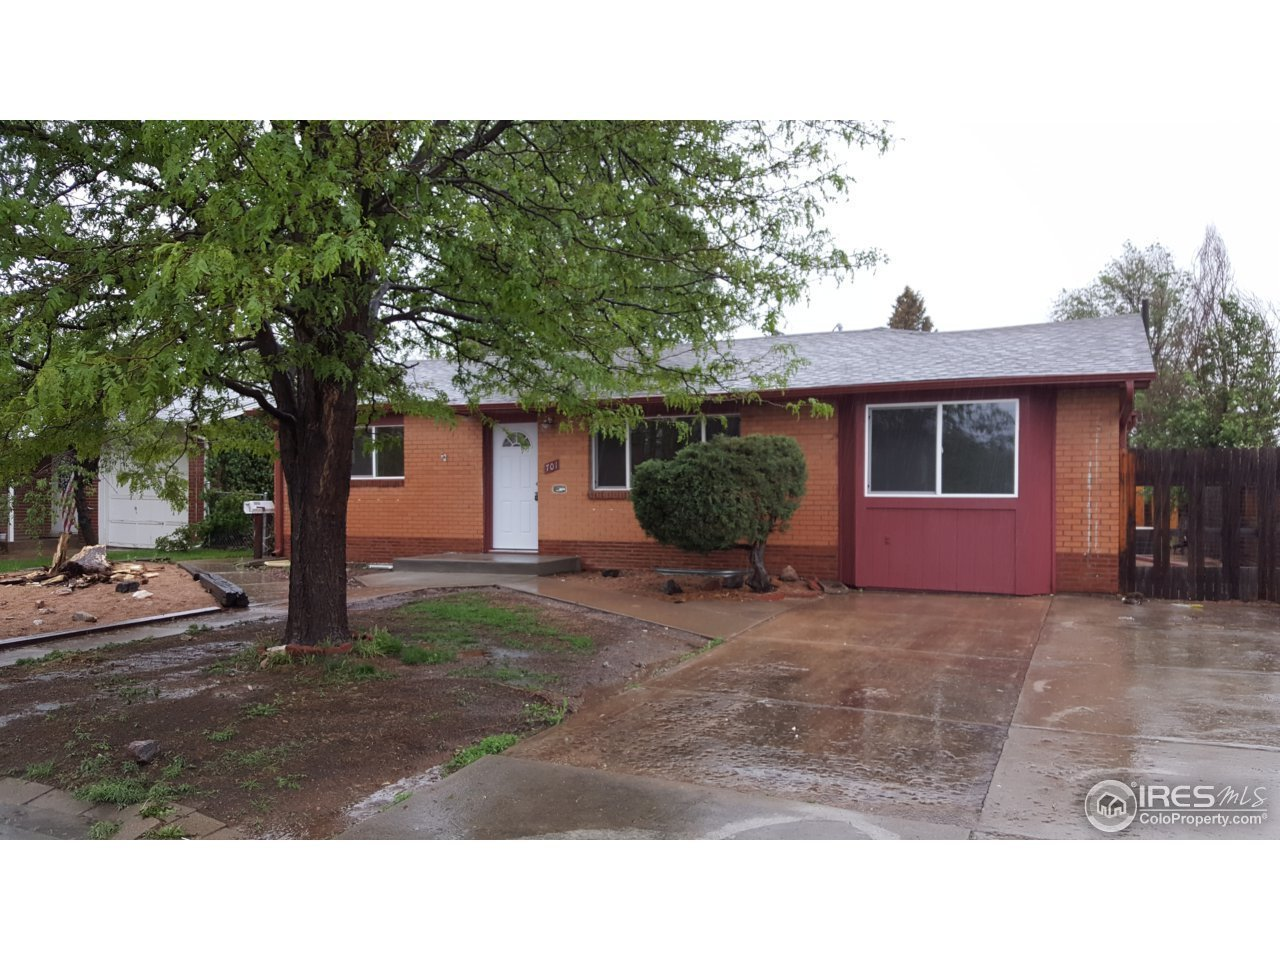 701 27th ave, greeley, co 80634 | mls# 820563 | redfin